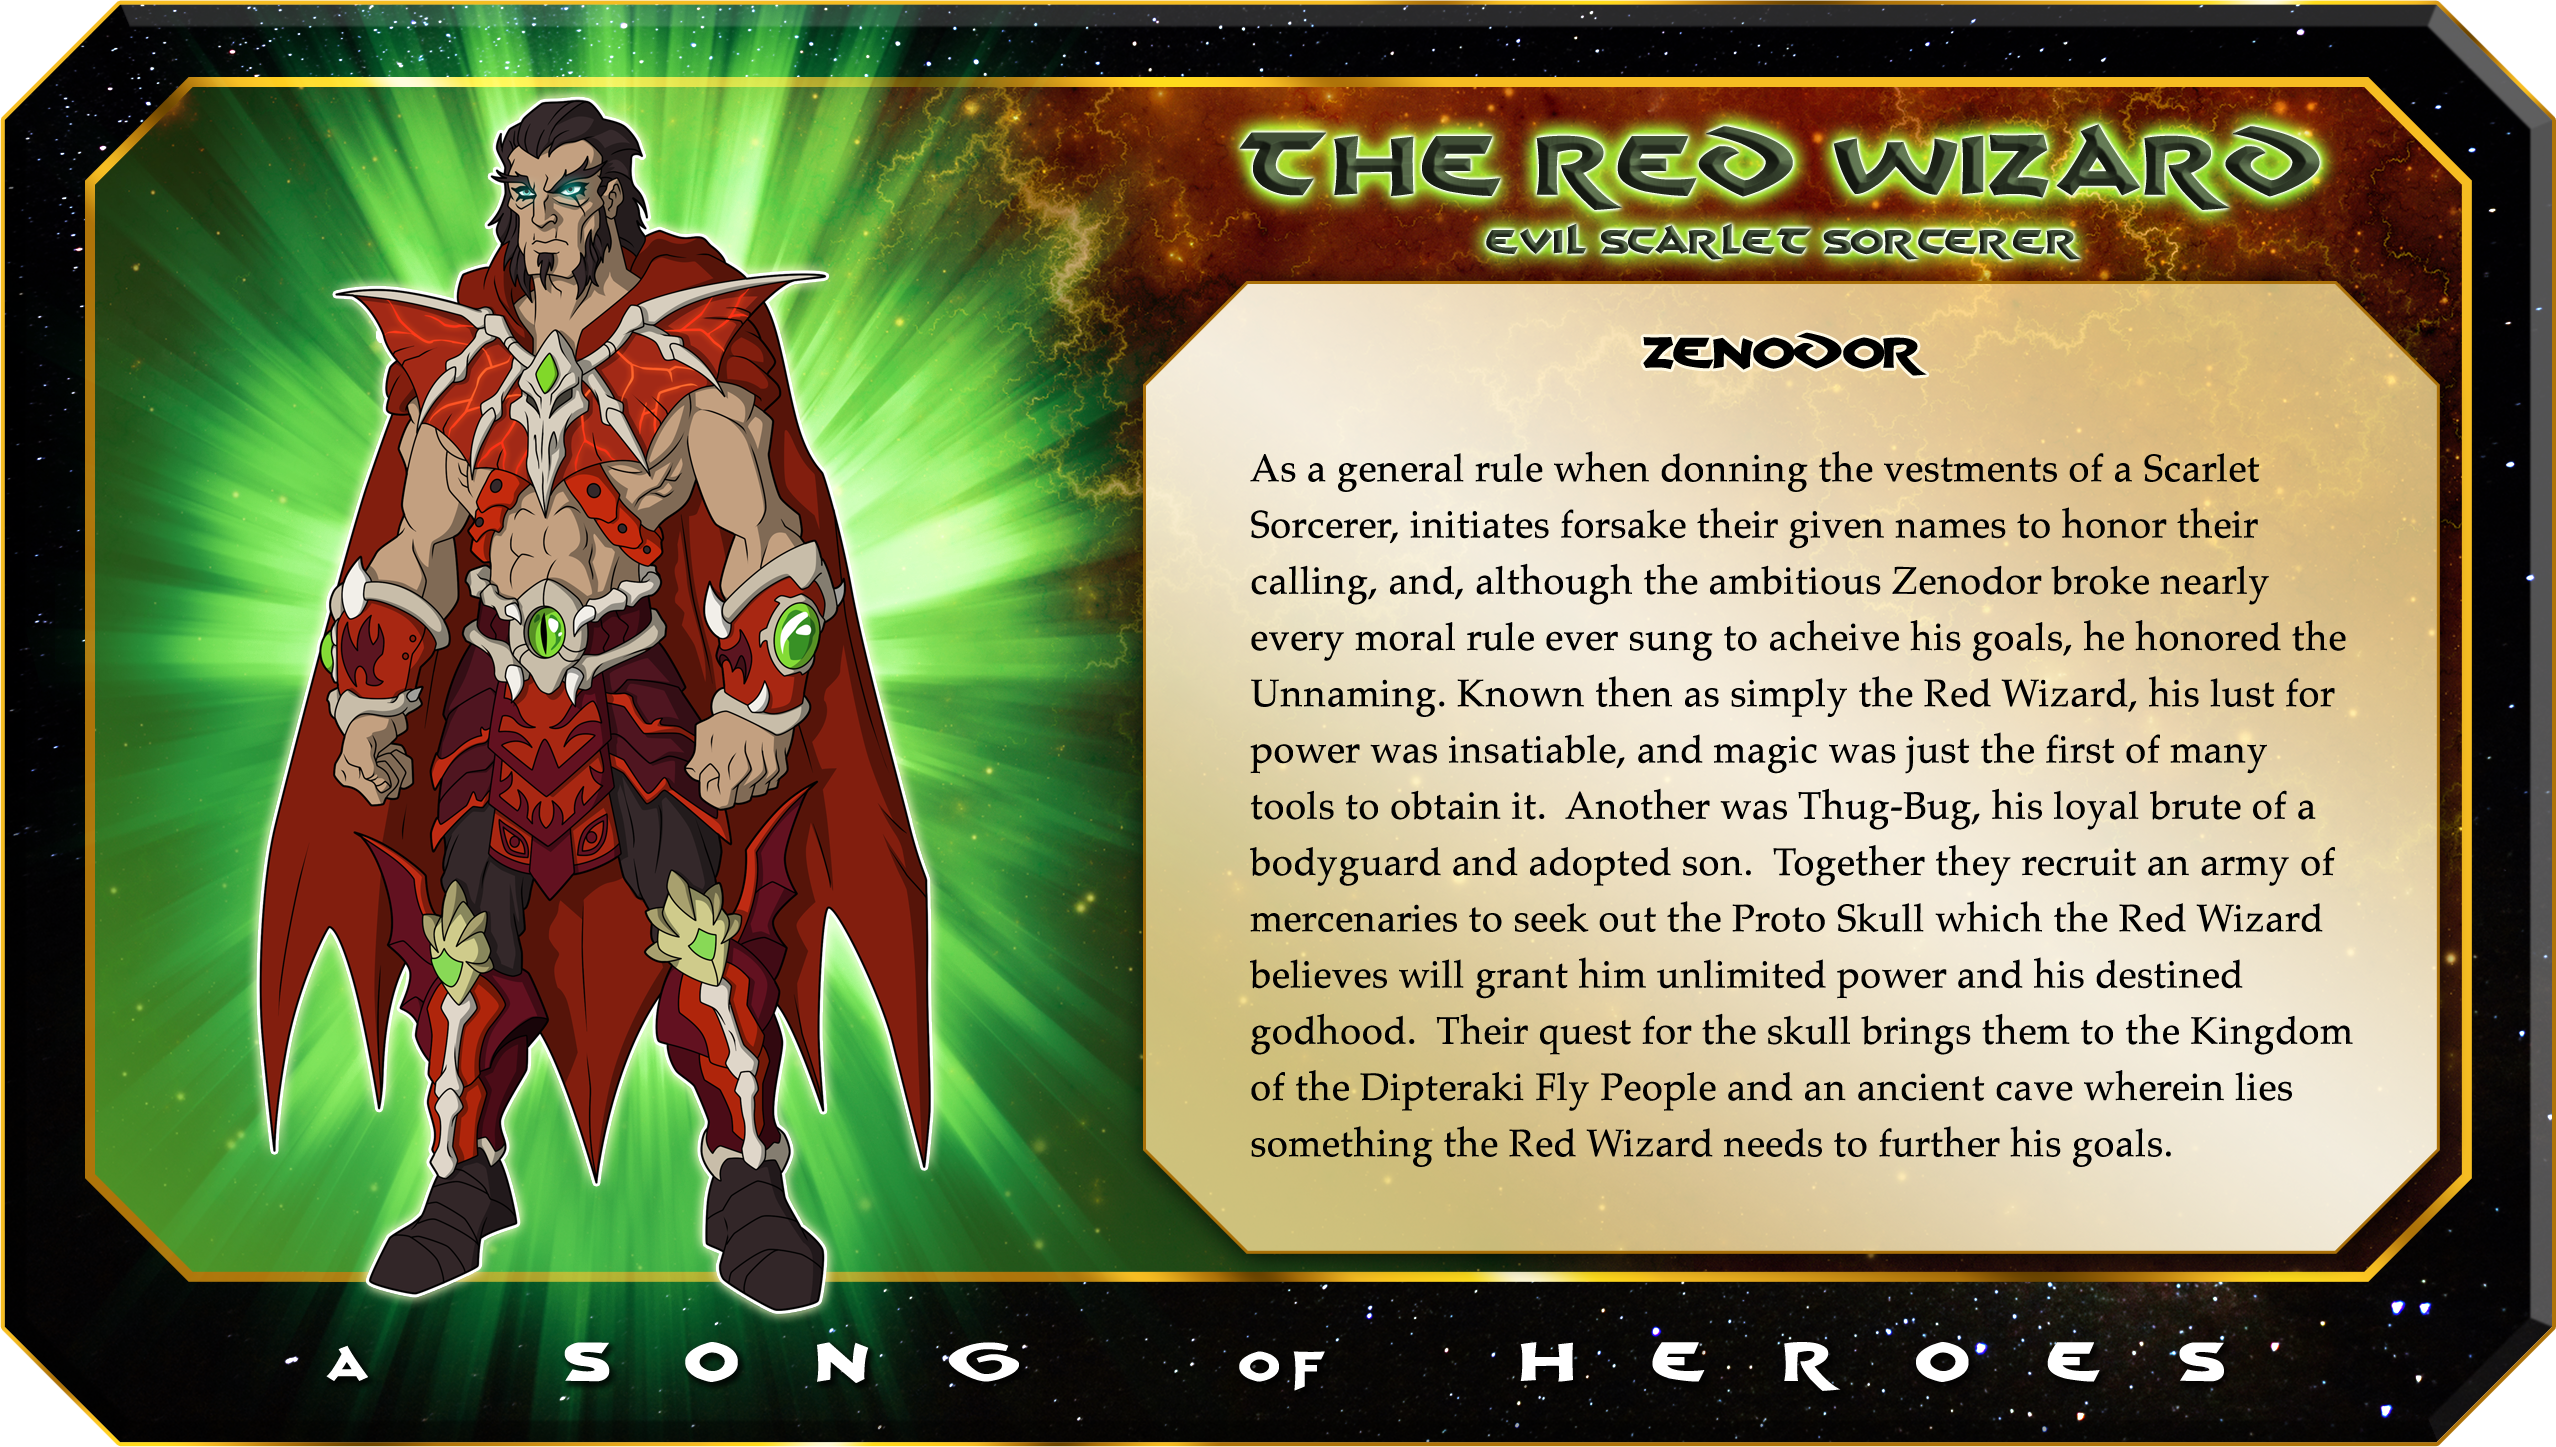 Bio of the Red Wizard